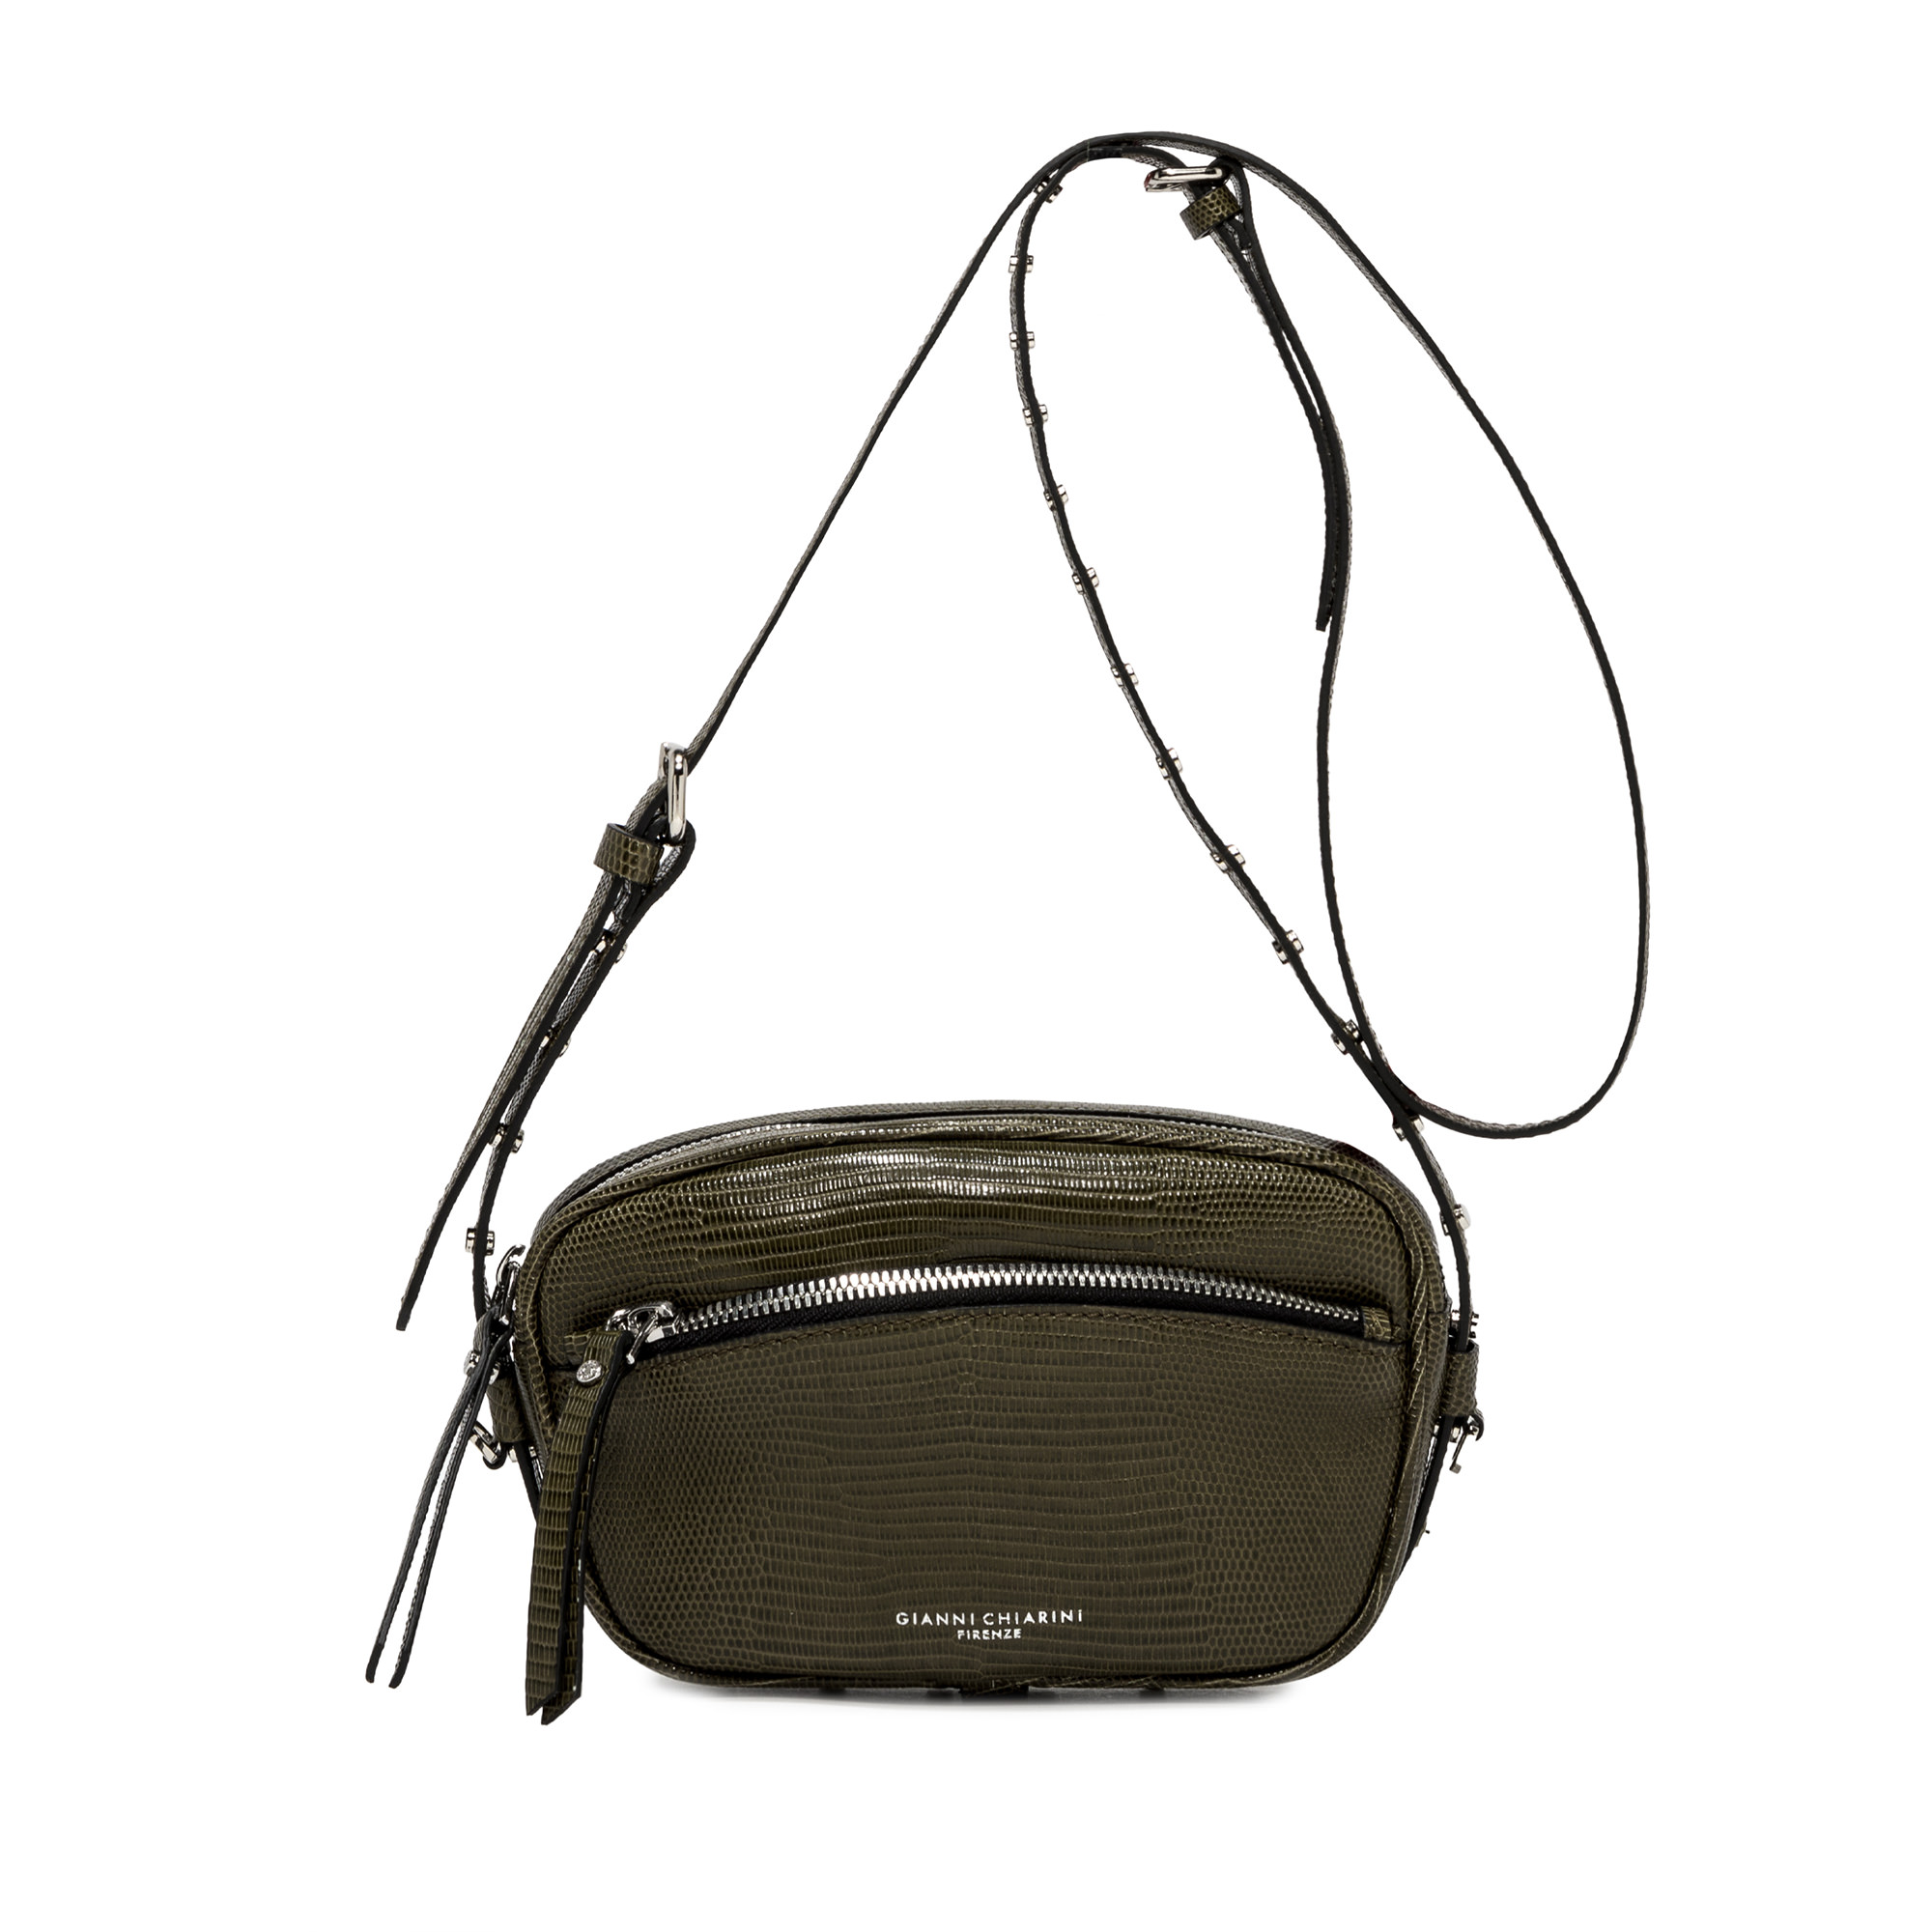 Women's Bag Pouch Molly in Green Animal Print Leather with Mini Studs and Matching Shoulder Strap Gianni Chiarini   Bags and backpacks   BS88457390